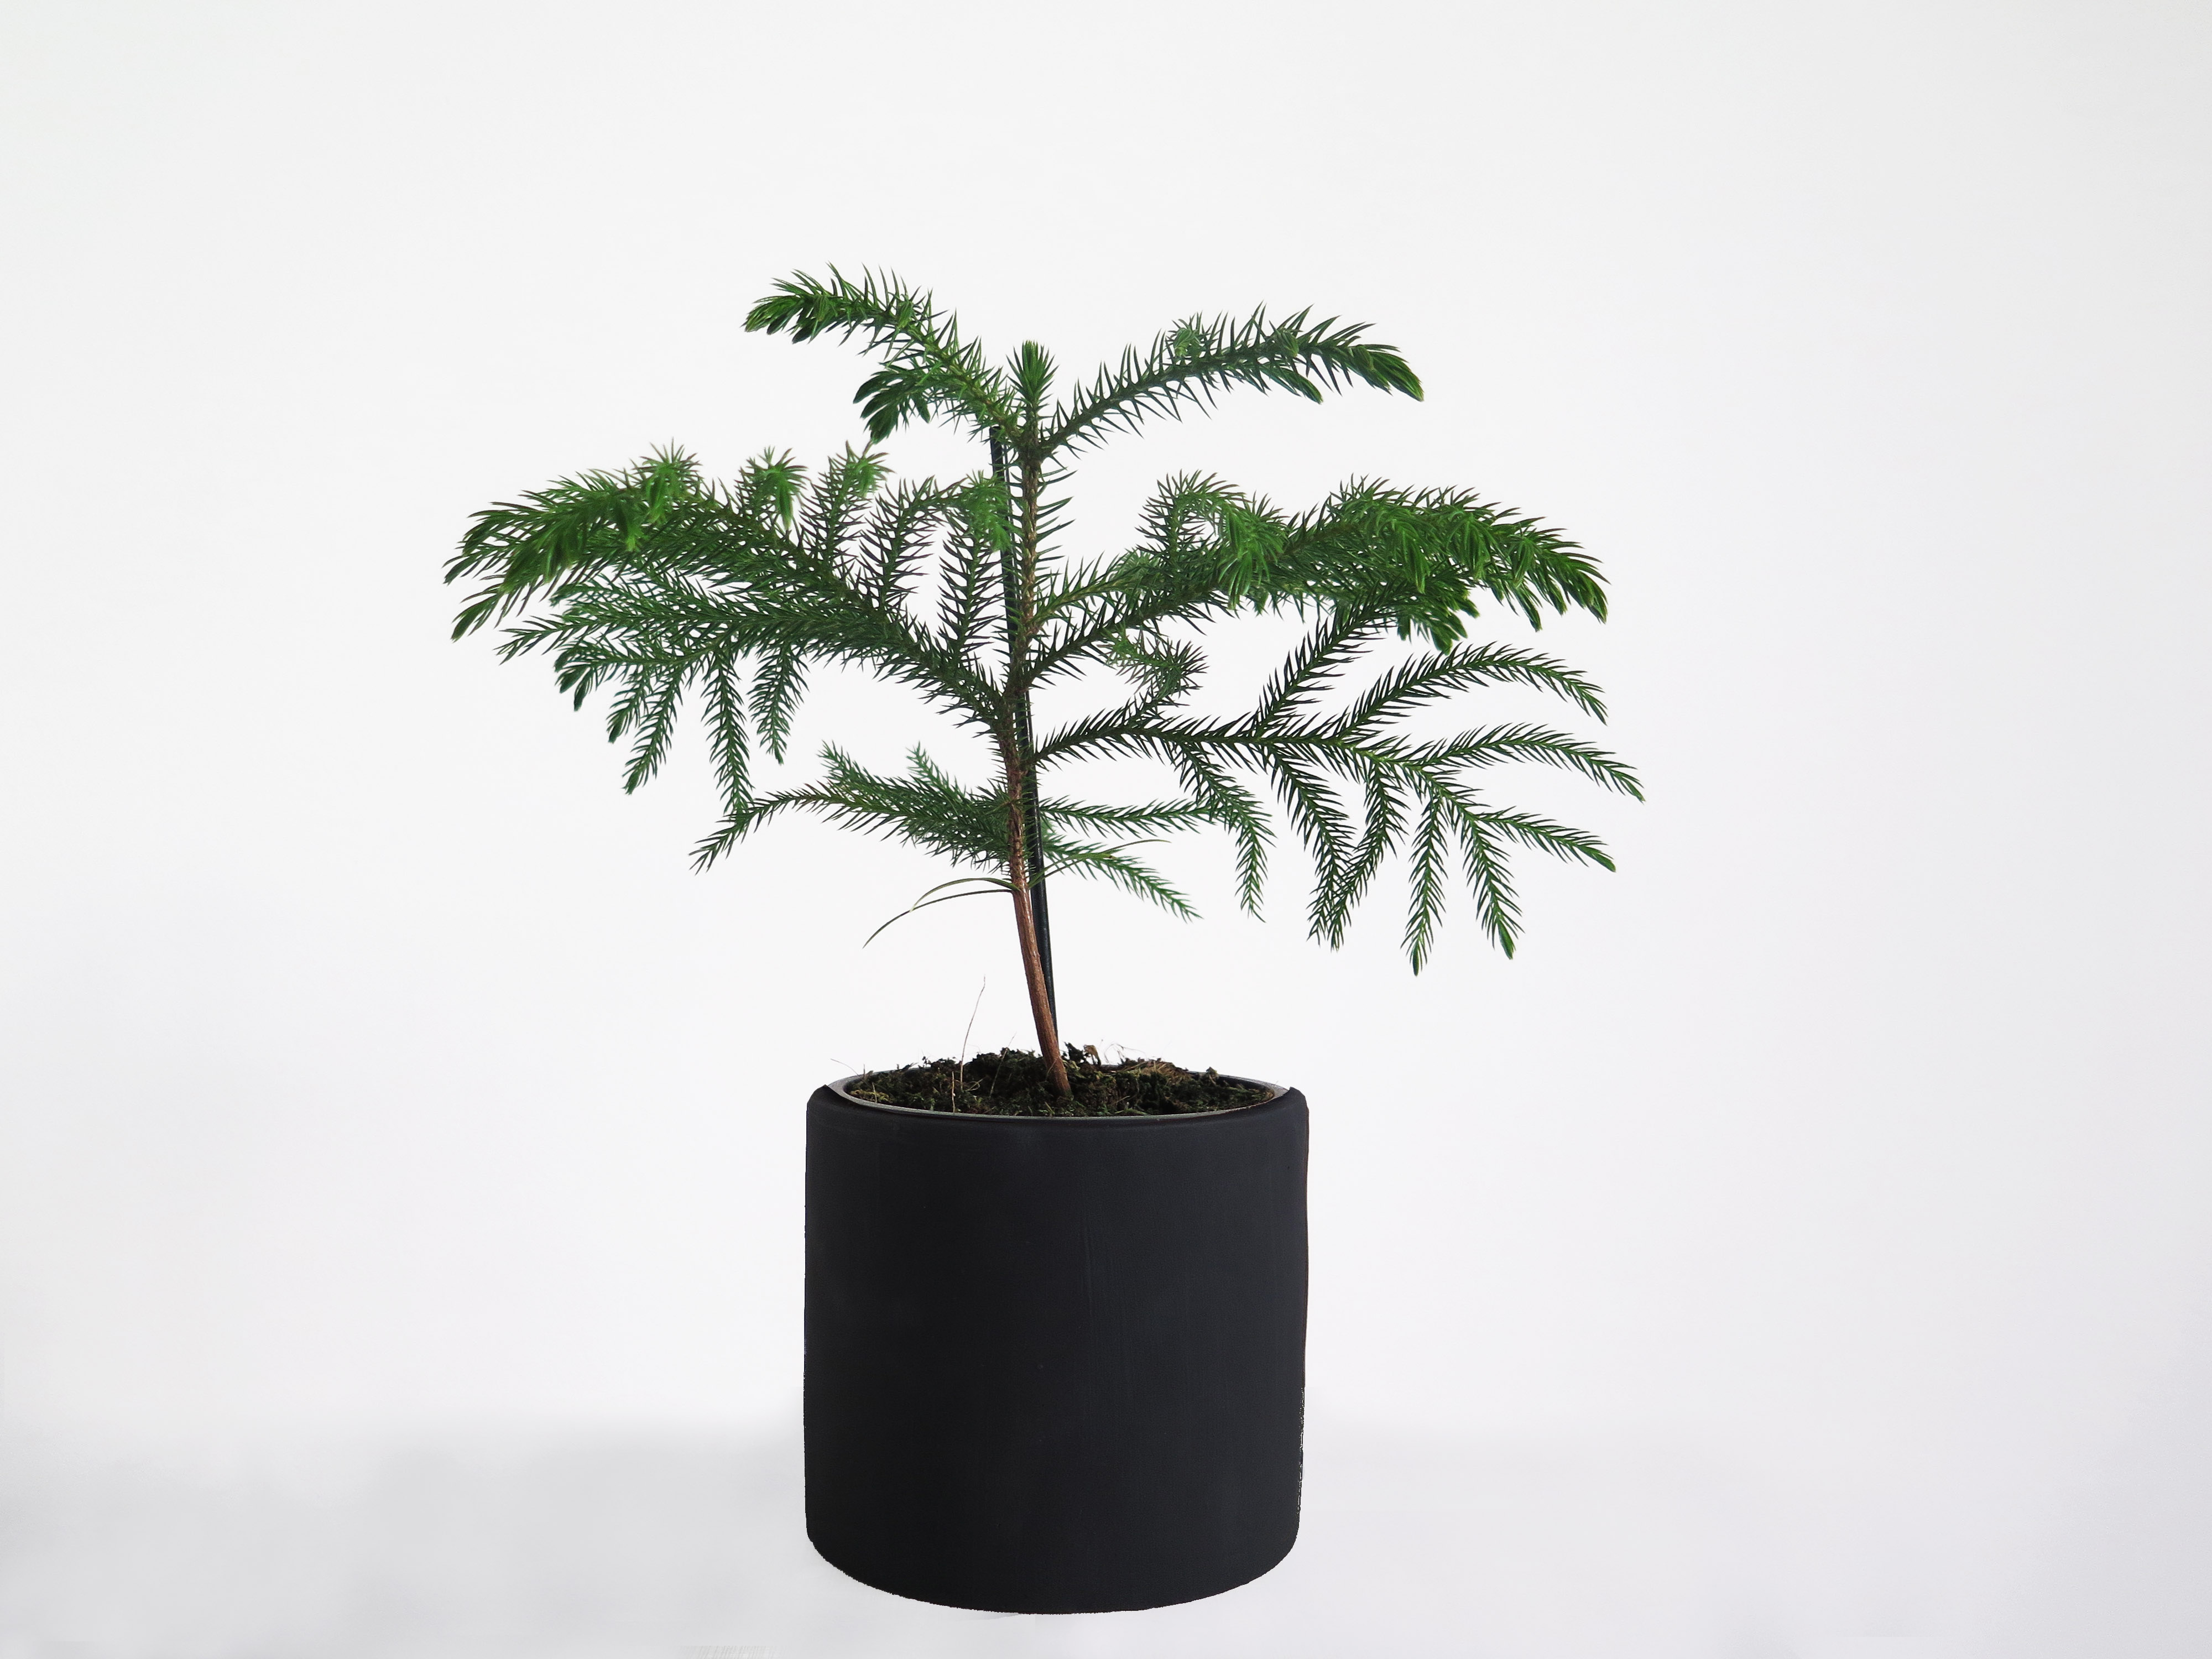 araucaria_potted-plant